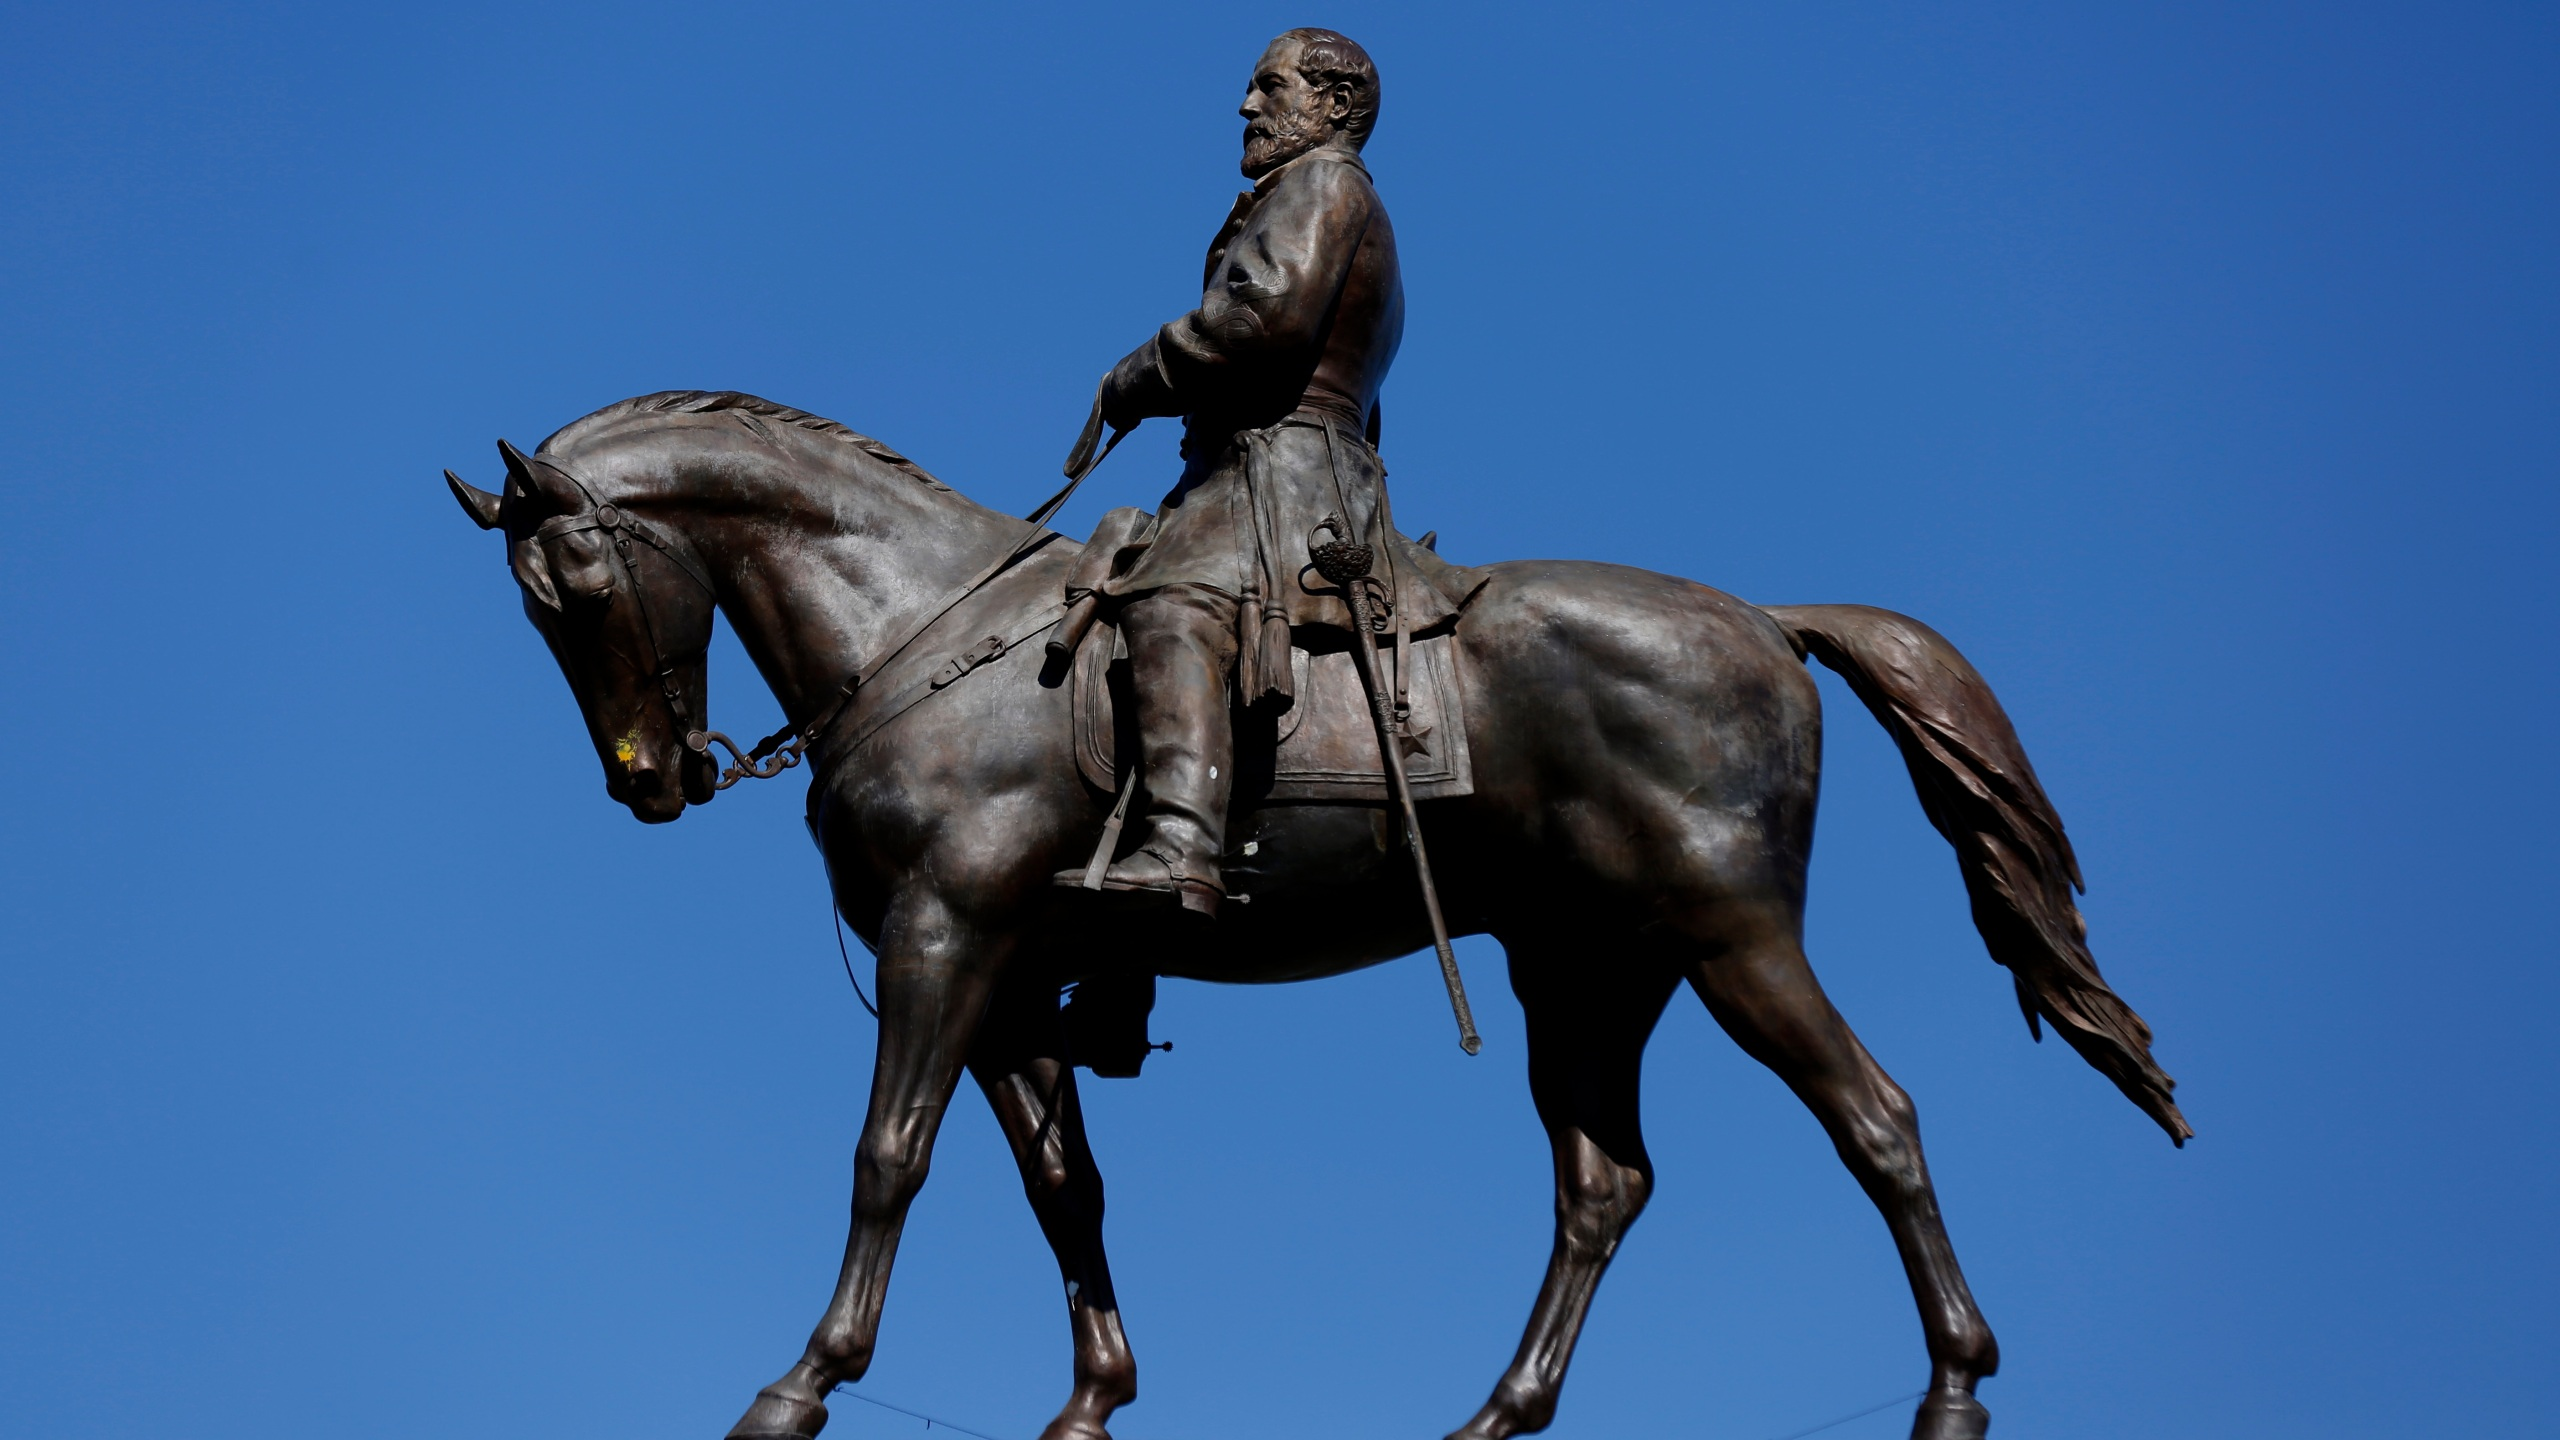 FILE - In this Thursday, Sept. 2, 2021, file photo, the Robert E. Lee Monument is shown in Richmond, Va. The Supreme Court of Virginia has ruled unanimously that the iconic statue of Confederate Gen. Robert E. Lee can be removed from its place of honor in Richmond. (Daniel Sangjib Min/Richmond Times-Dispatch via AP, File)